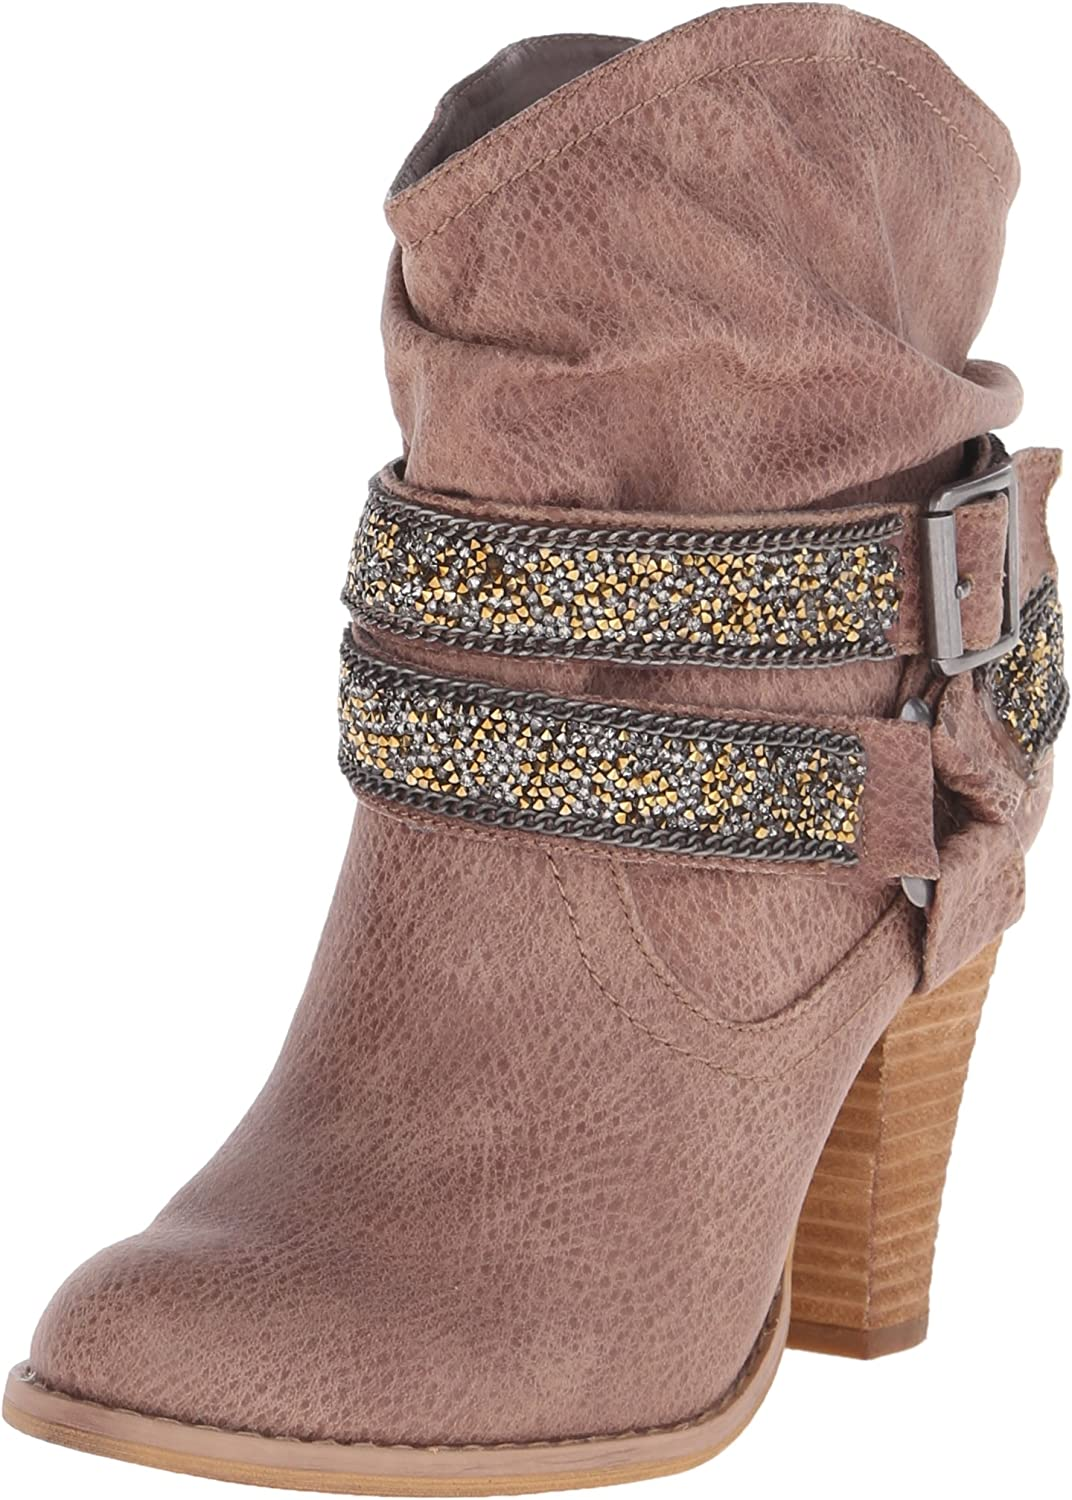 Not Rated Limited time trial price Women's Max 68% OFF Cottonwood Boot